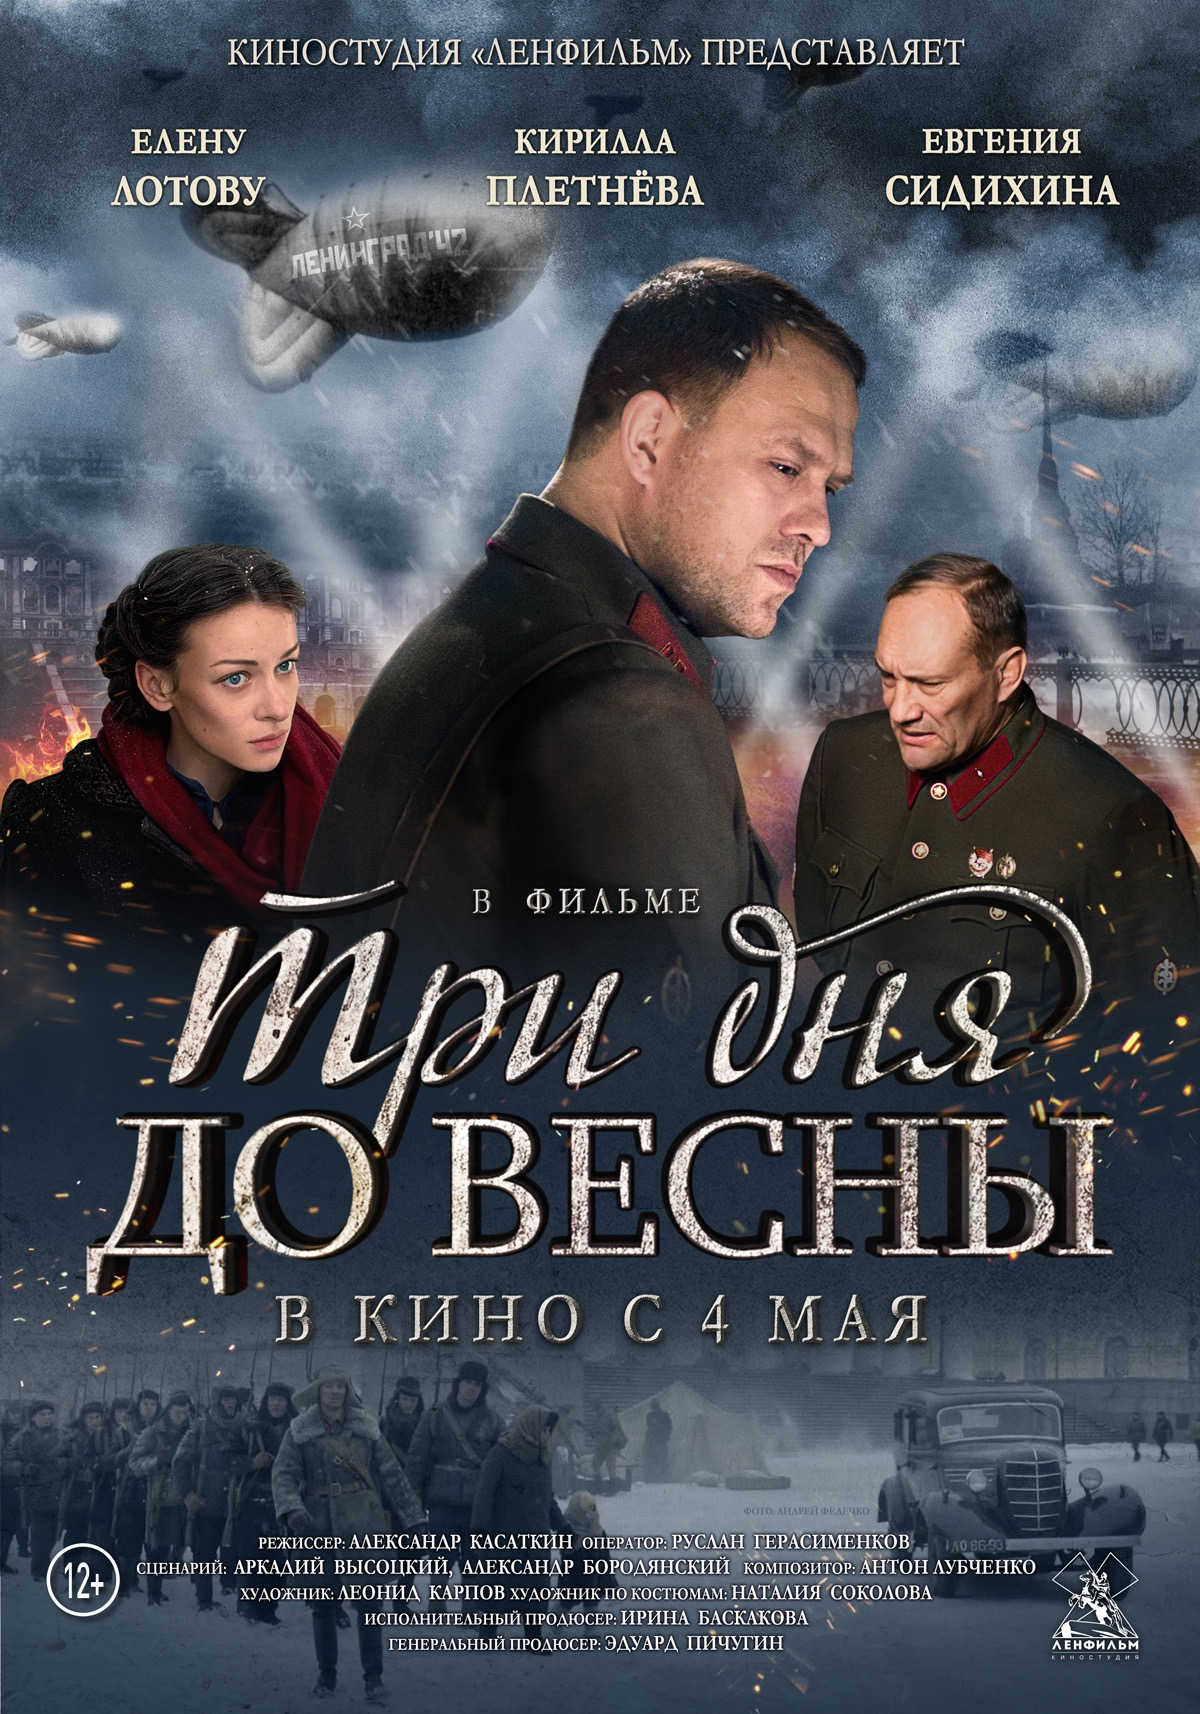 Vladimir Ilyin: biography, filmography and the personal life of the artist (photo)